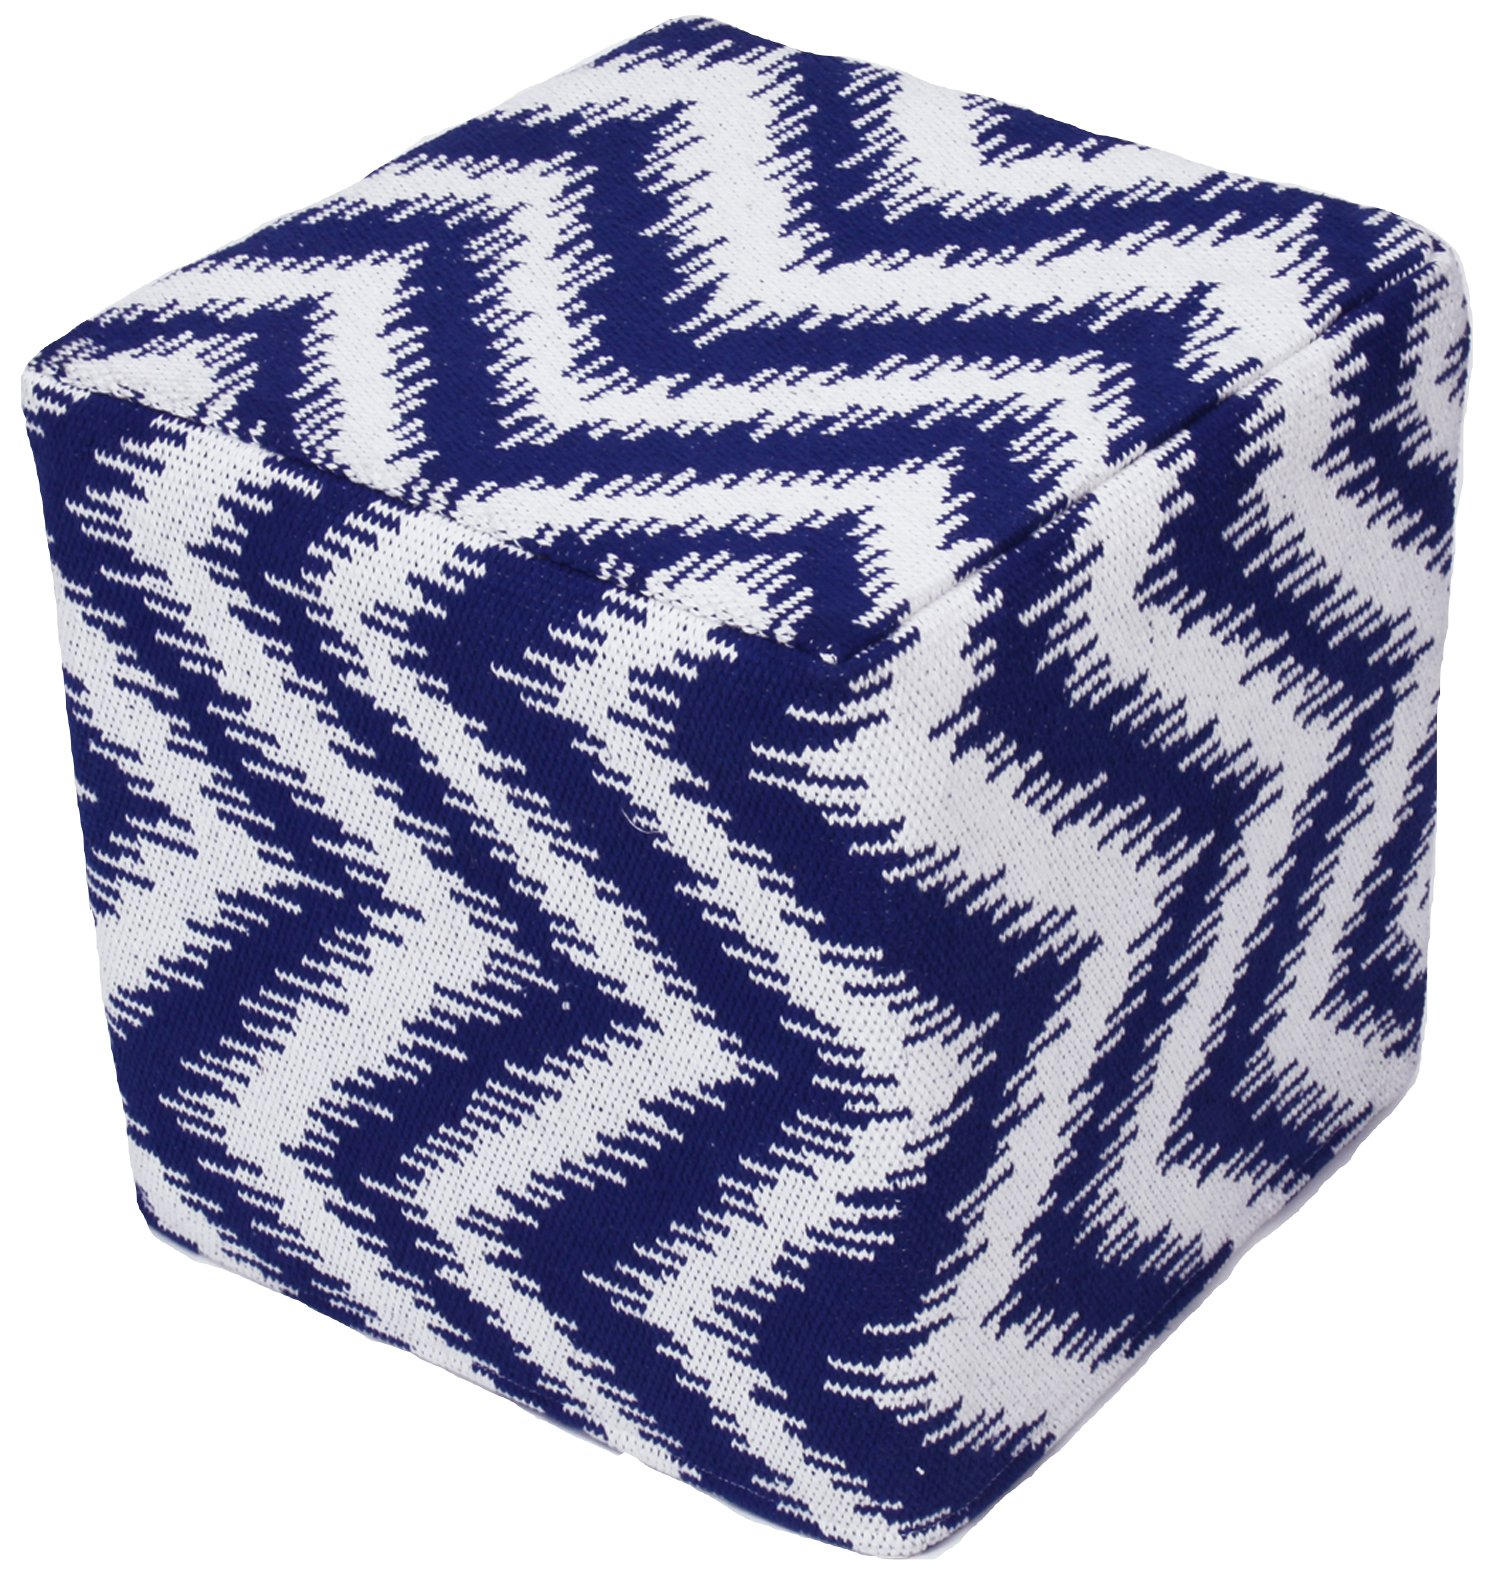 Design Accents Chevron Hand Woven Pouf, 18-Inch by 18-Inch by 18-Inch, Indigo/Ivory